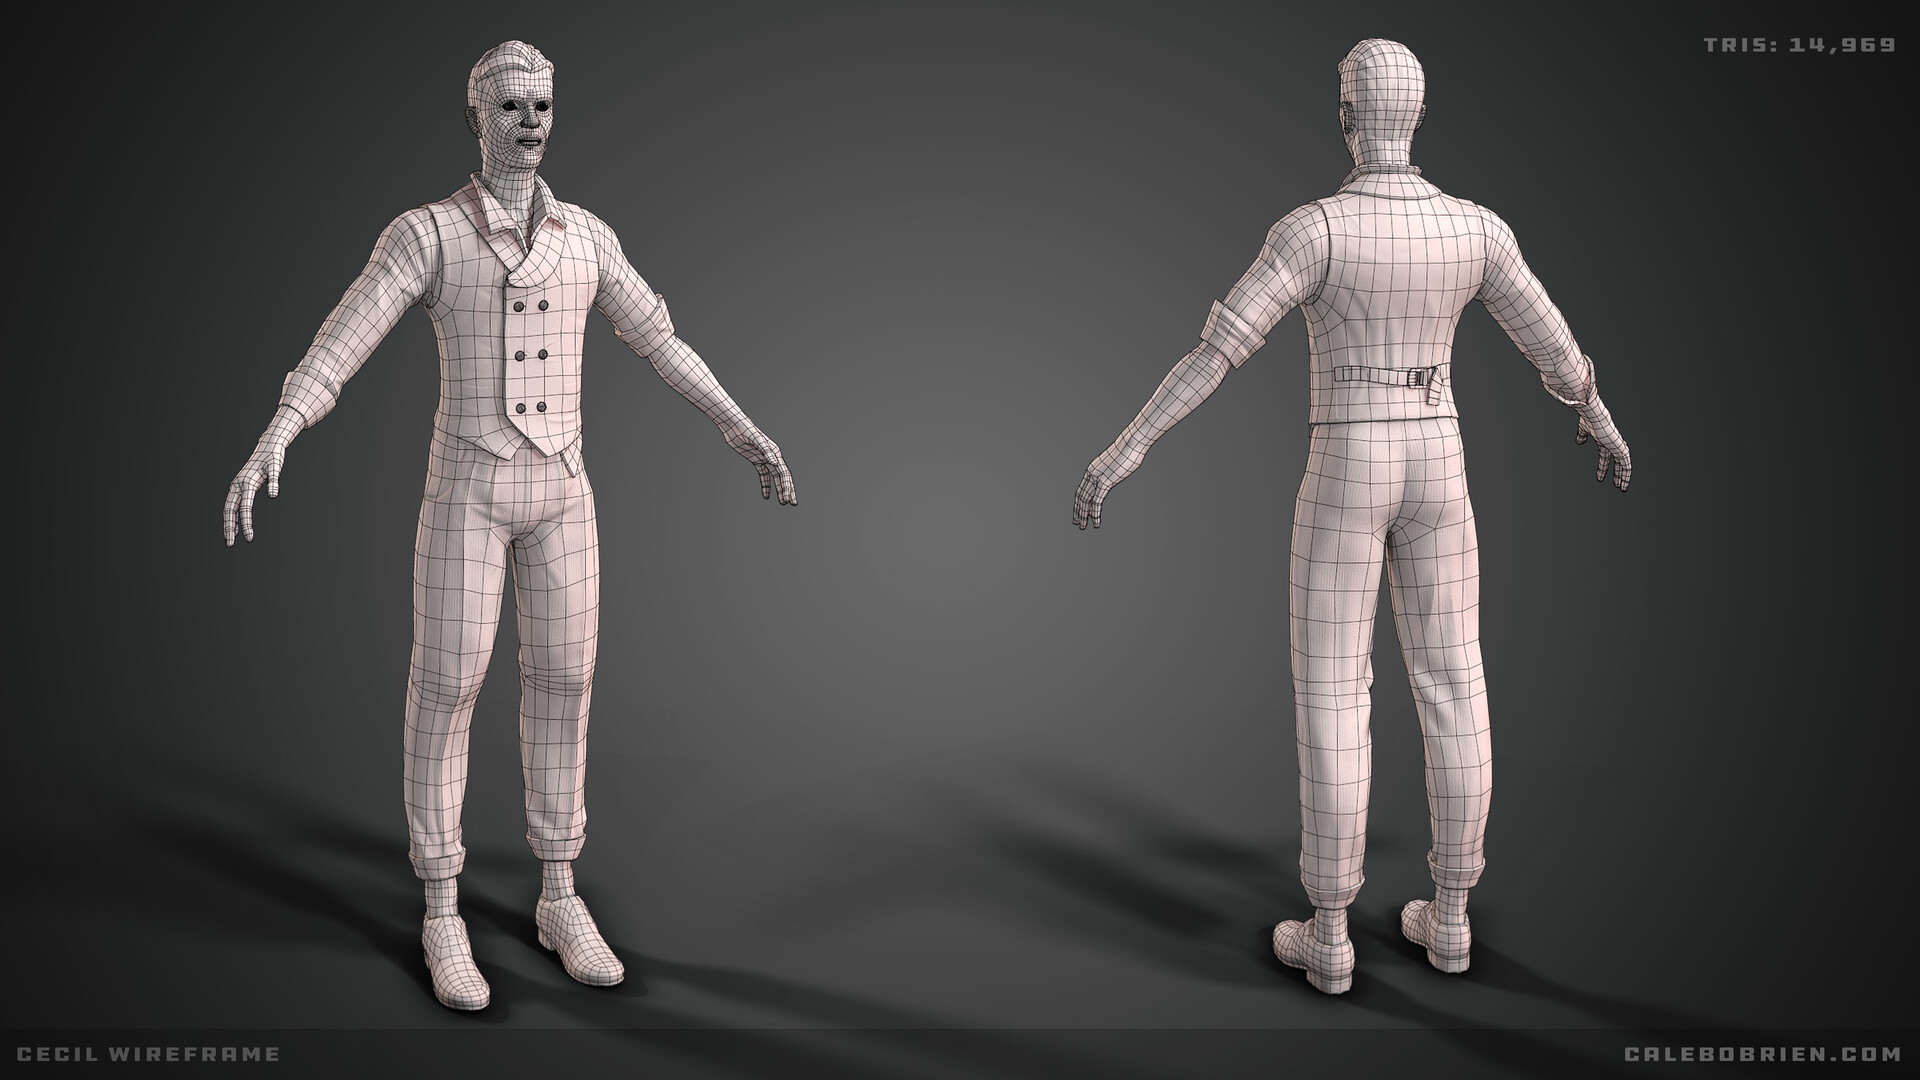 Caleb o brien hero wireframe